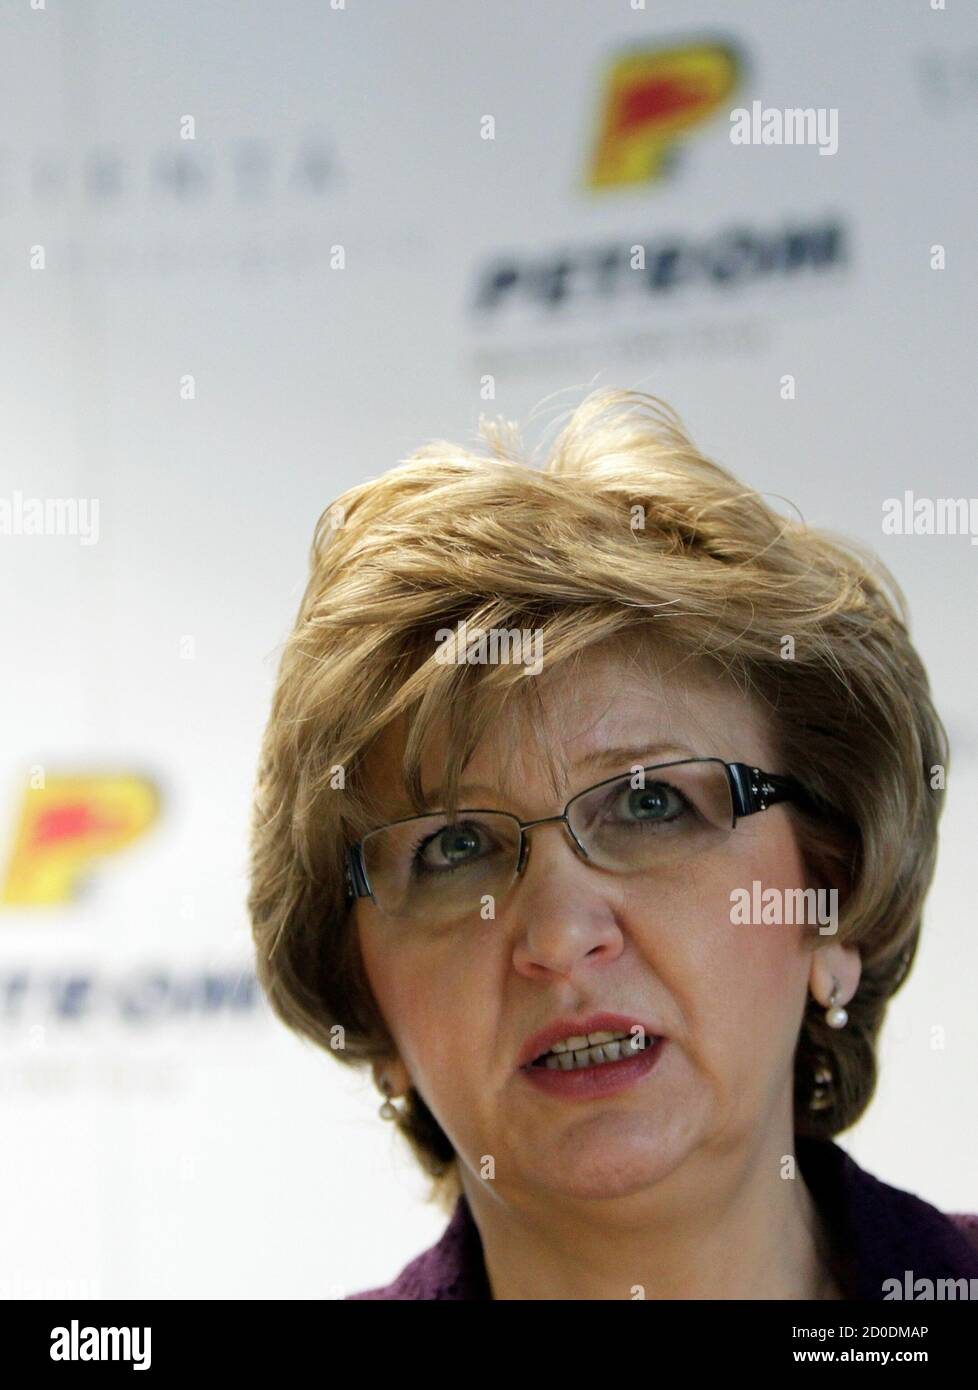 Mariana Gheorghe Ceo Of Petrom Addresses The Media During The Presentation Of The Earnings Report Of The Year 2010 In Bucharest February 23 2011 Romania S Top Energy Company Petrom Swung To A